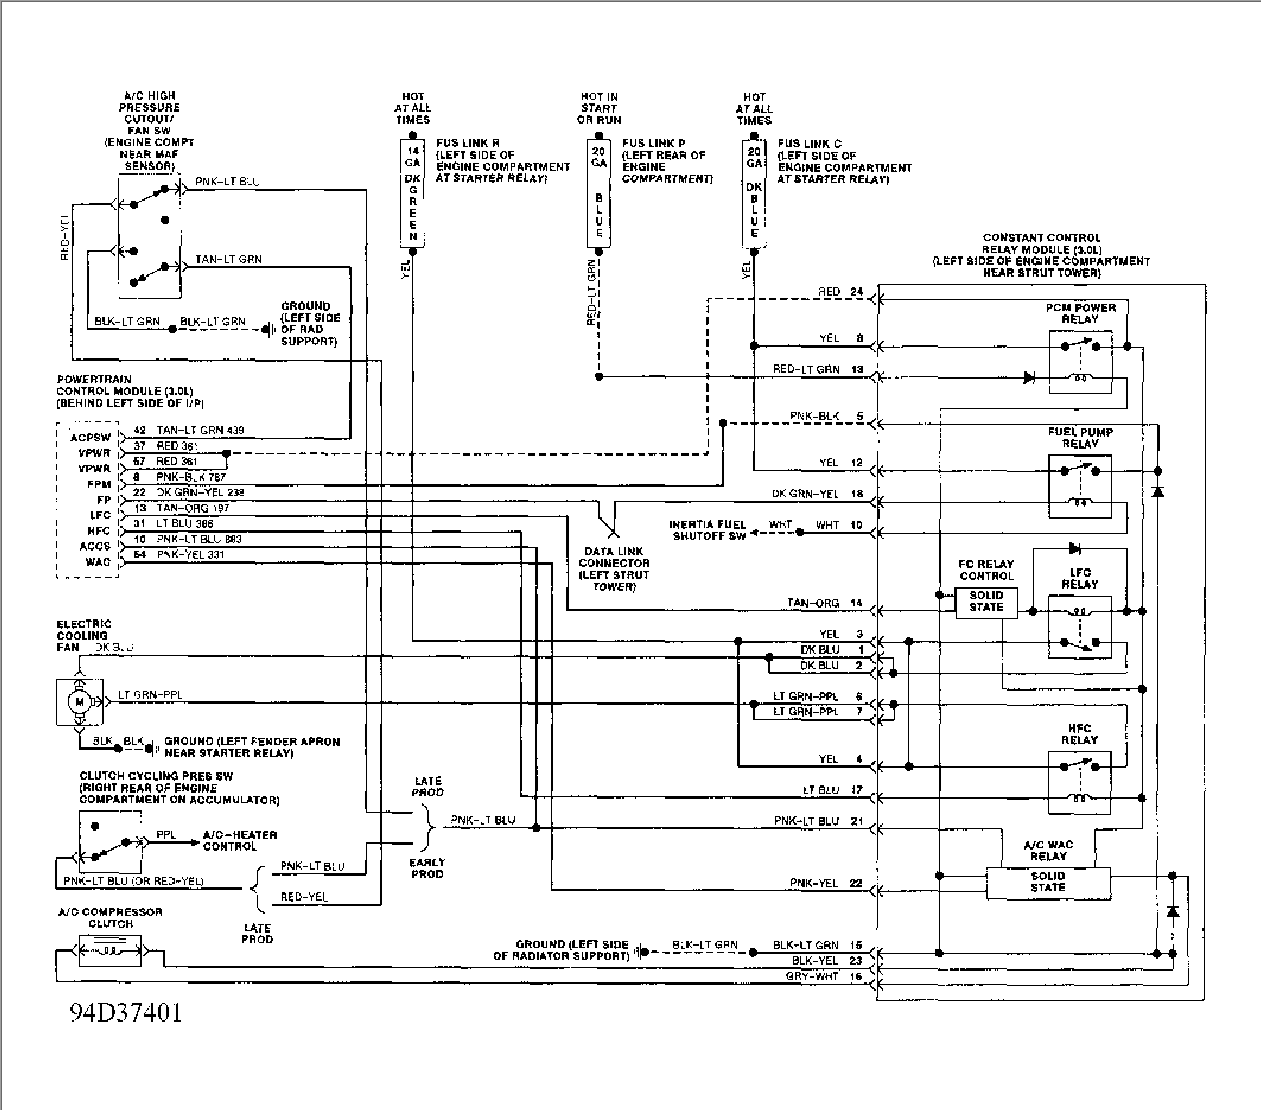 need wiring diagram for 1994 ford tempo electric cooling graphic